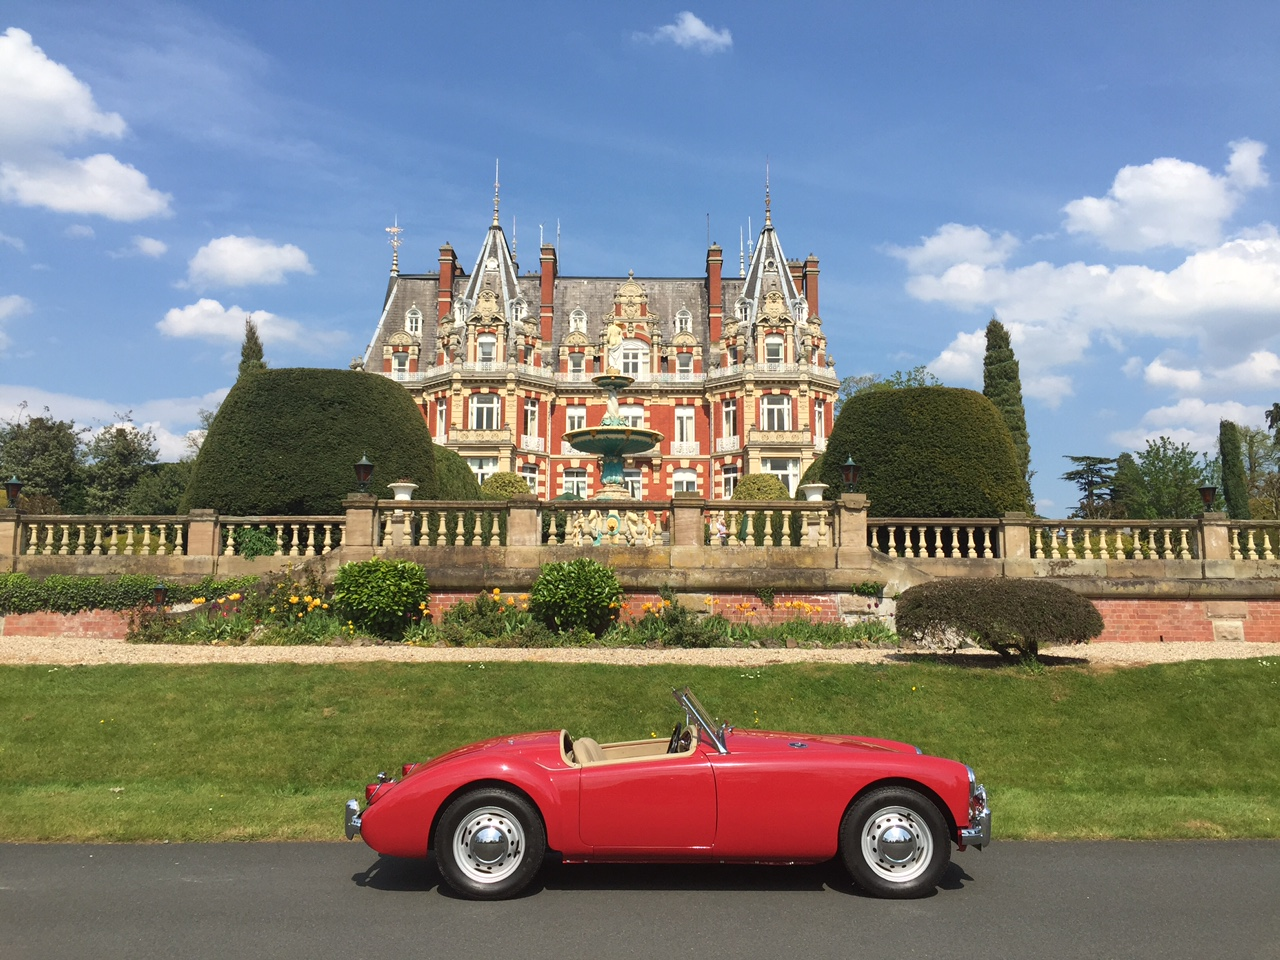 1957 MGA Chateau Impney Droitwich